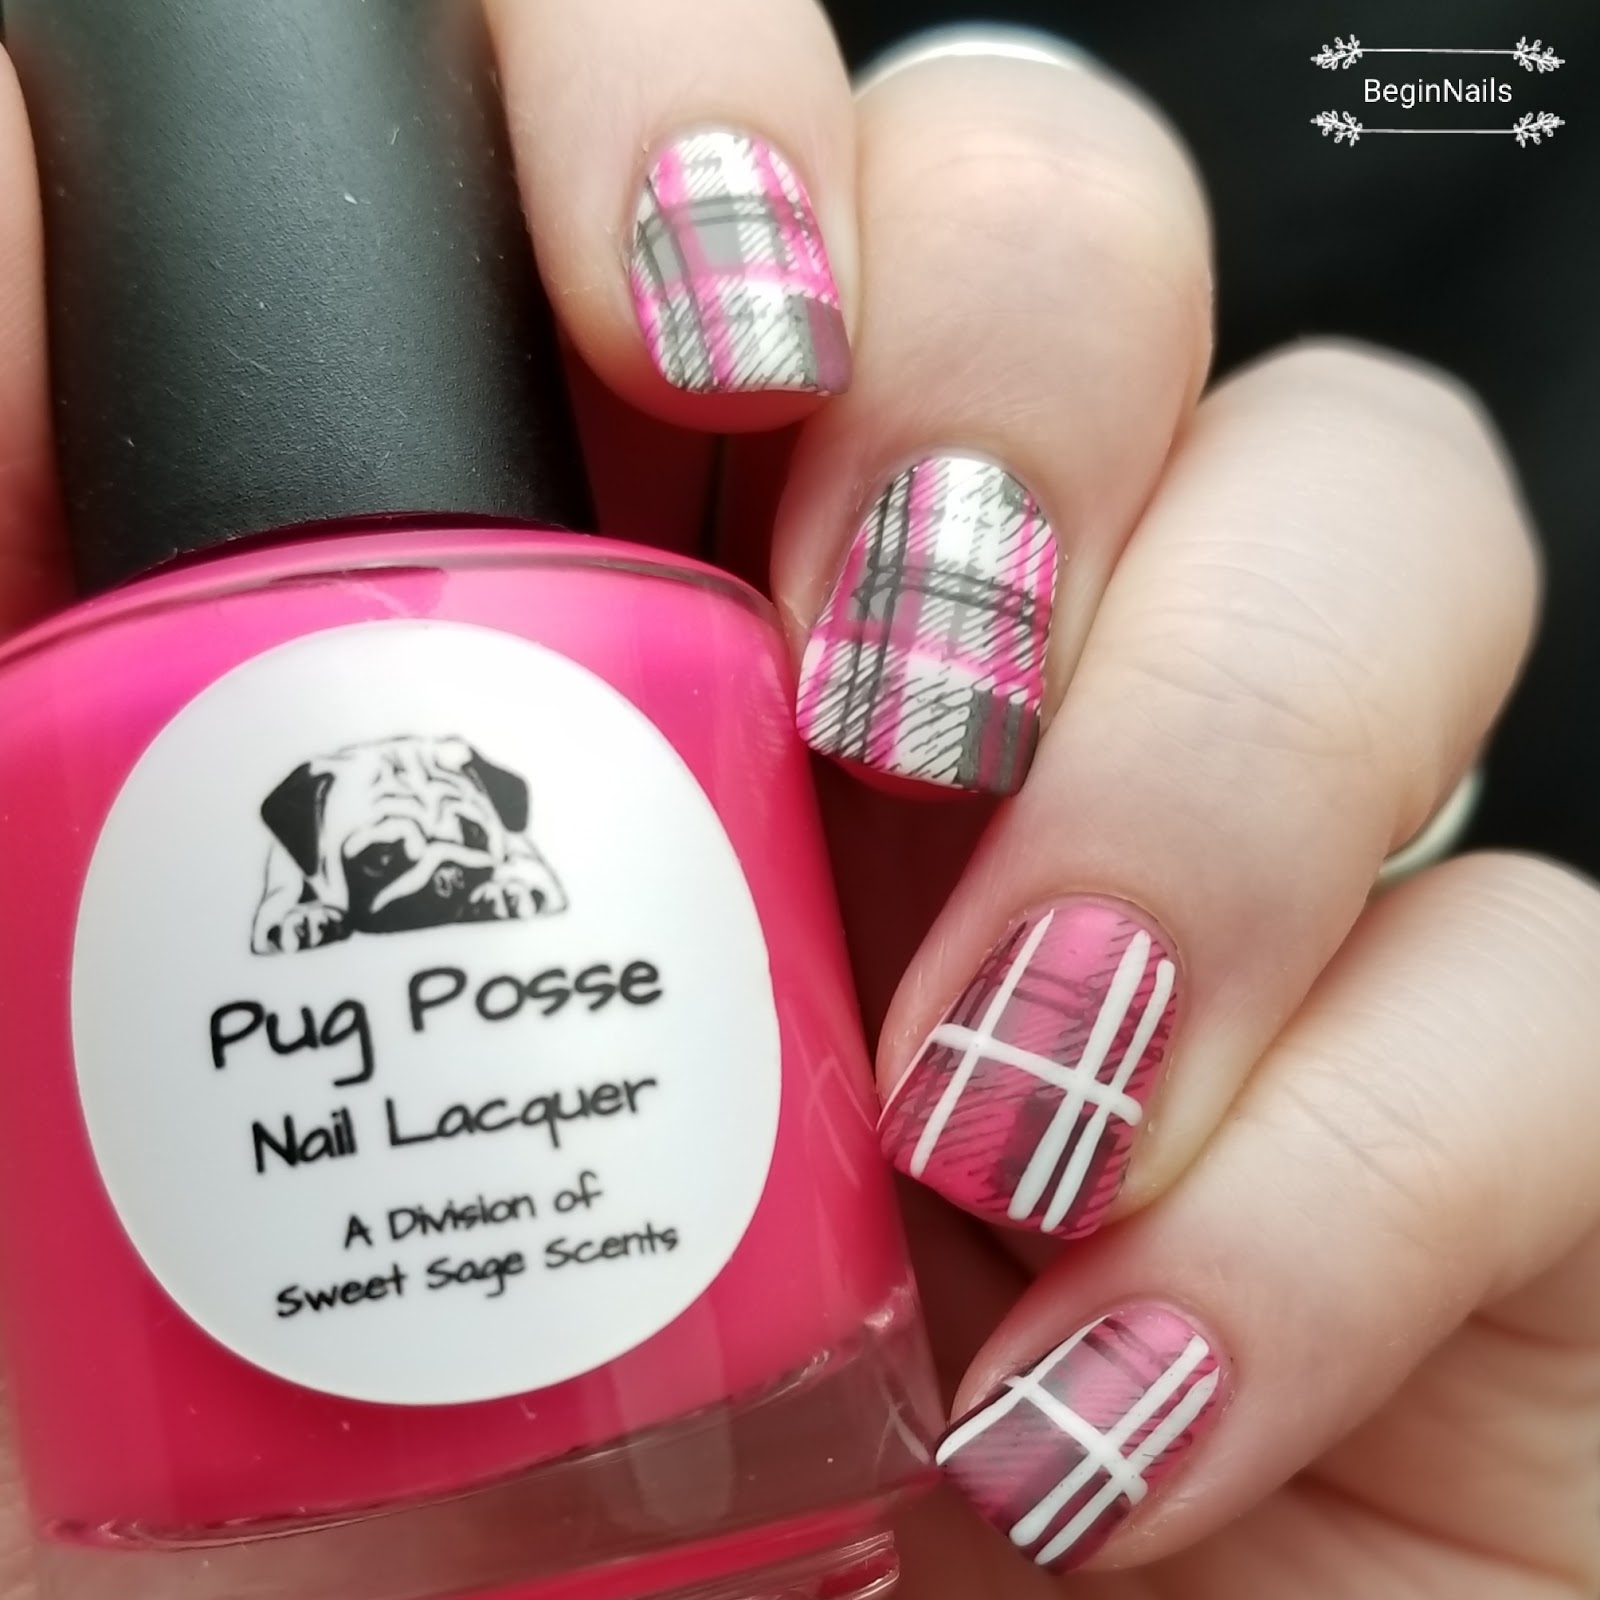 Let\'s Begin Nails: Digit-al Dozen: Indie Love - Pug Posse Nail Lacquer